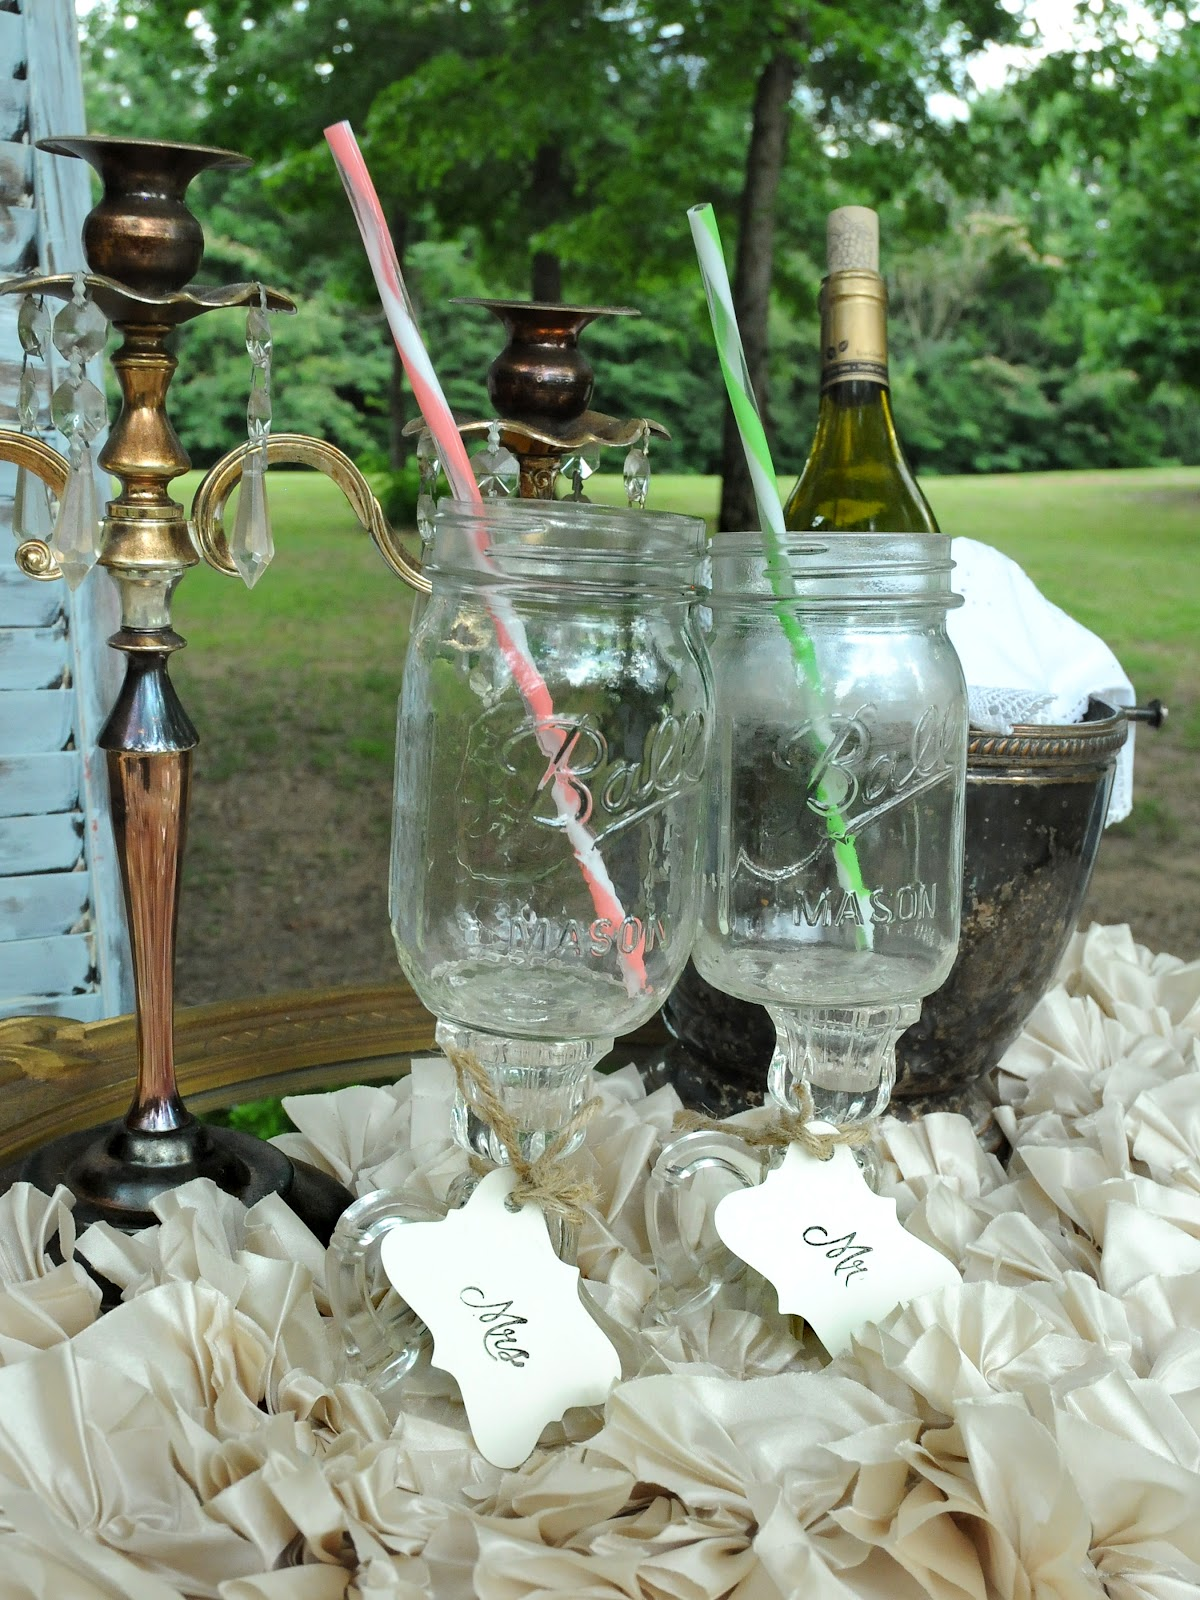 Grace upon al photo shoot of my rustic vintage